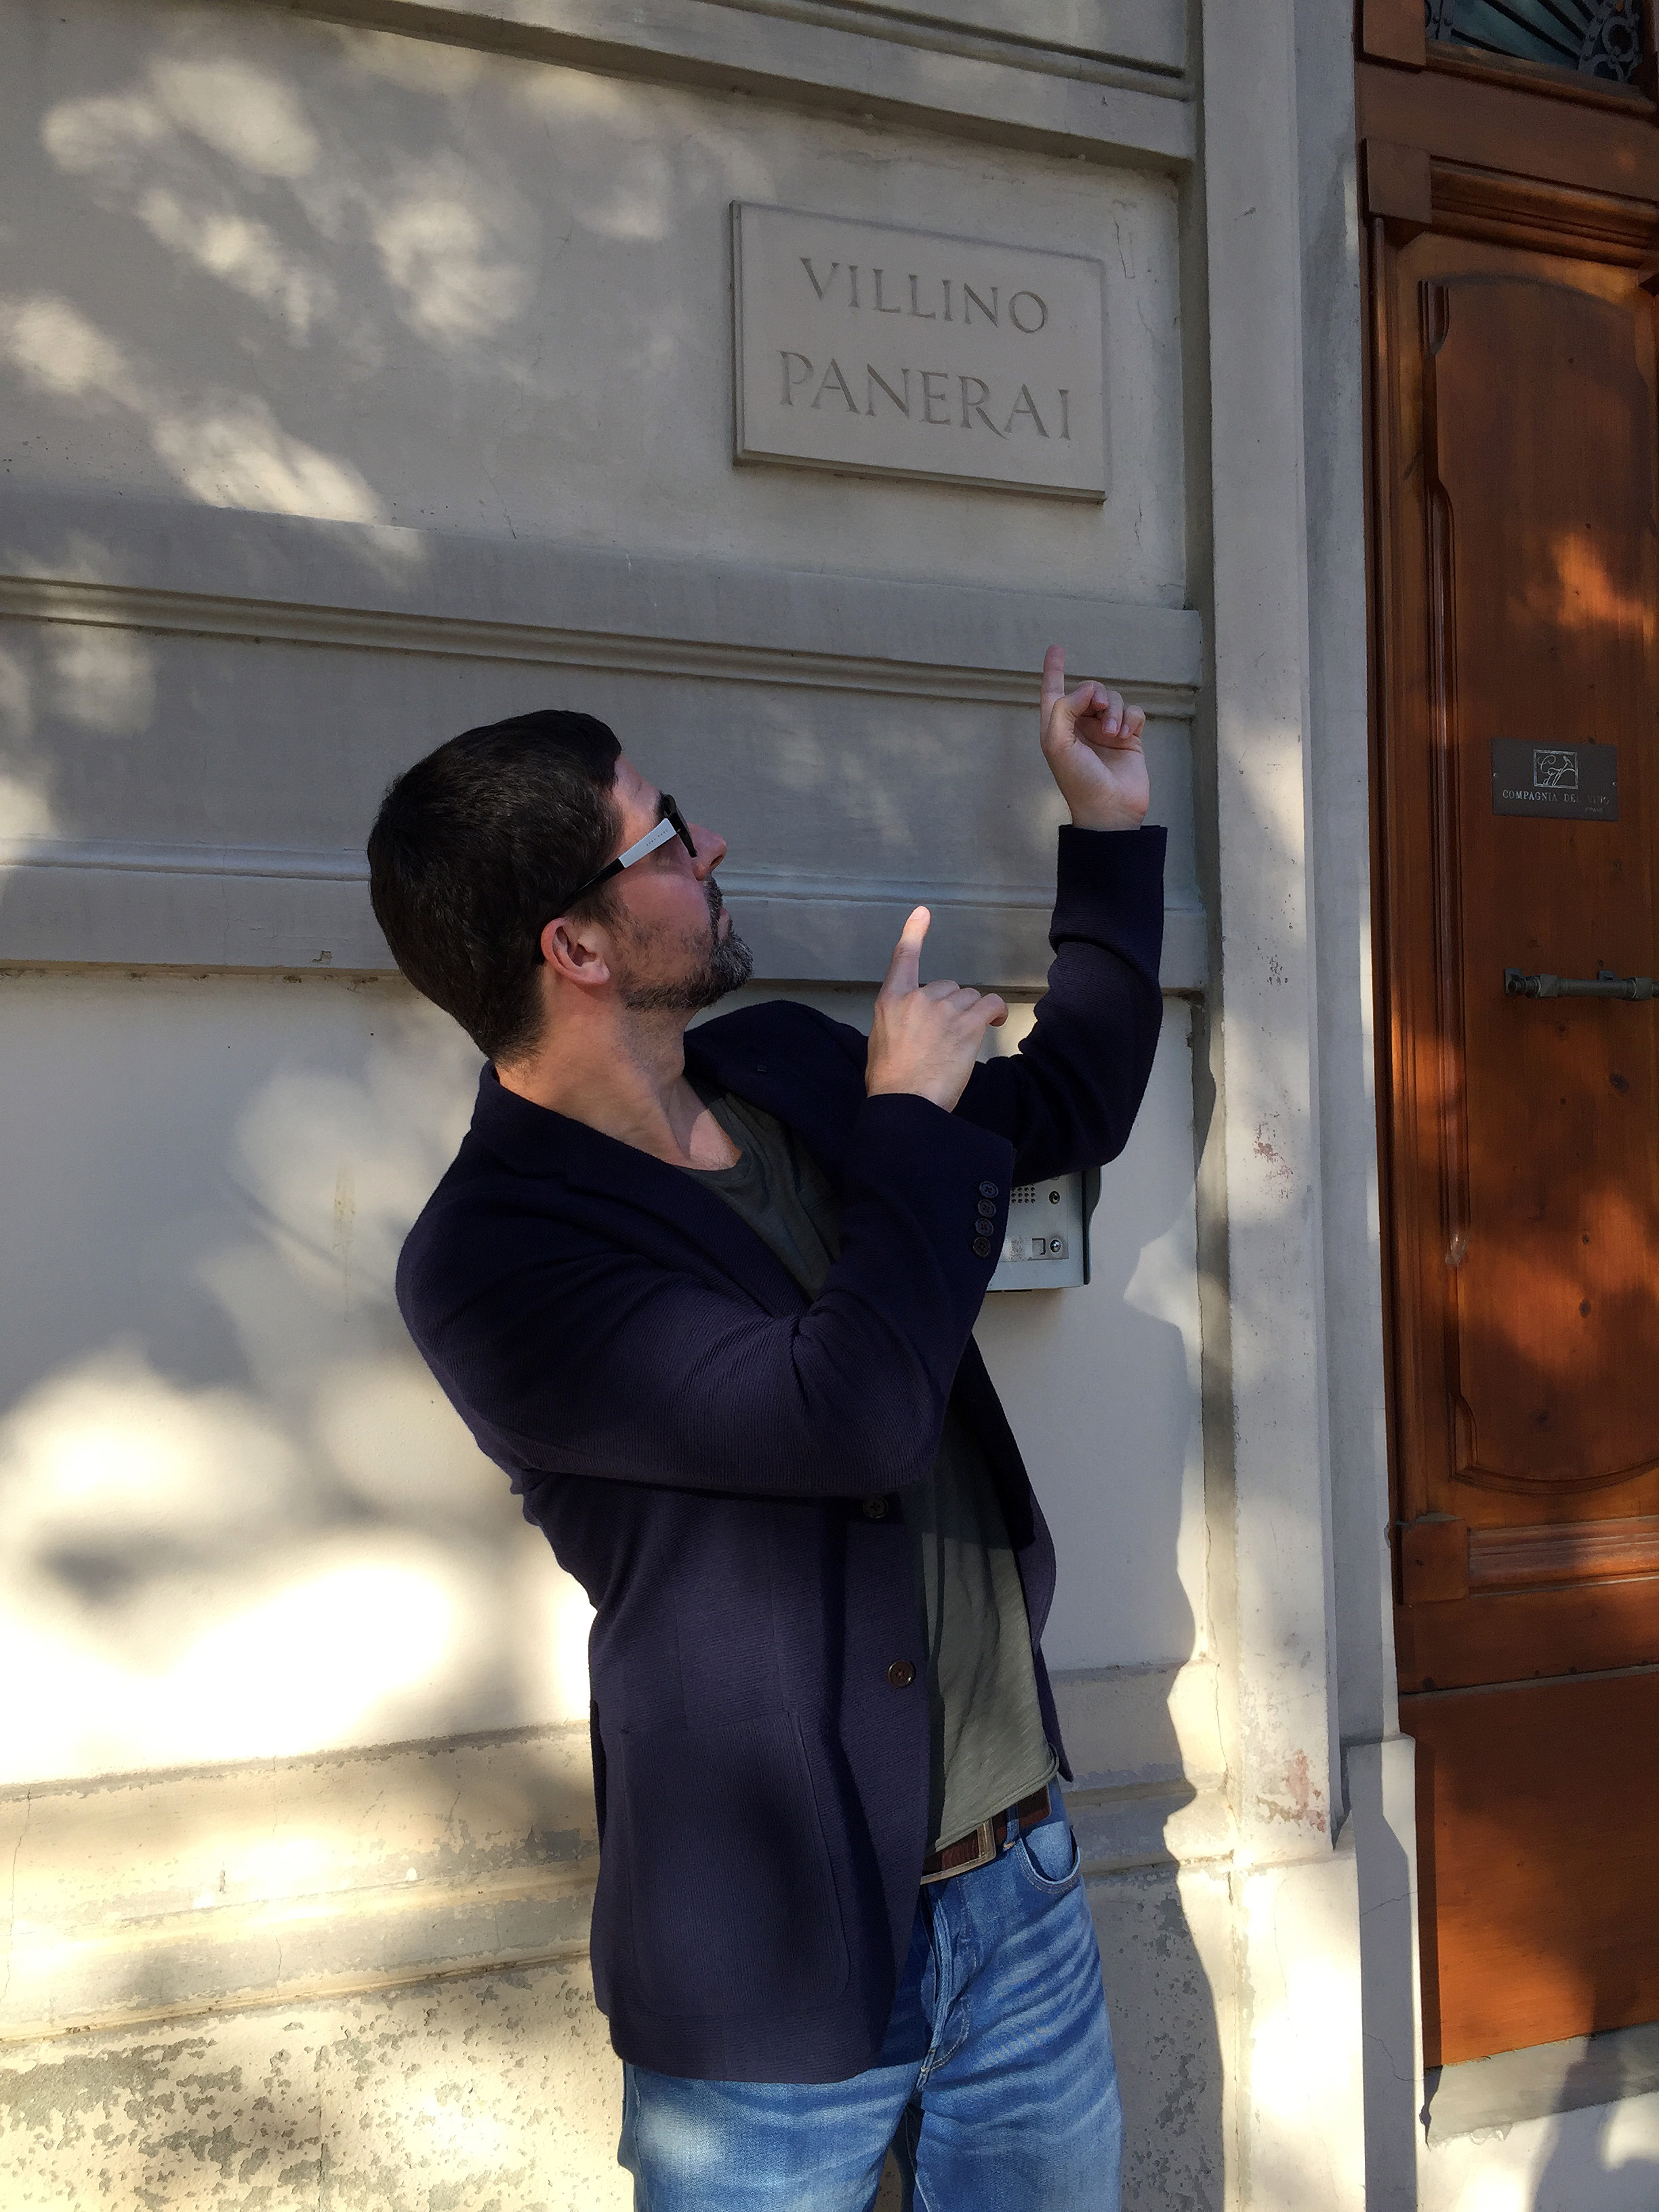 Jose Pereztroika in front of the Villino Panerai in Florence, May 2017